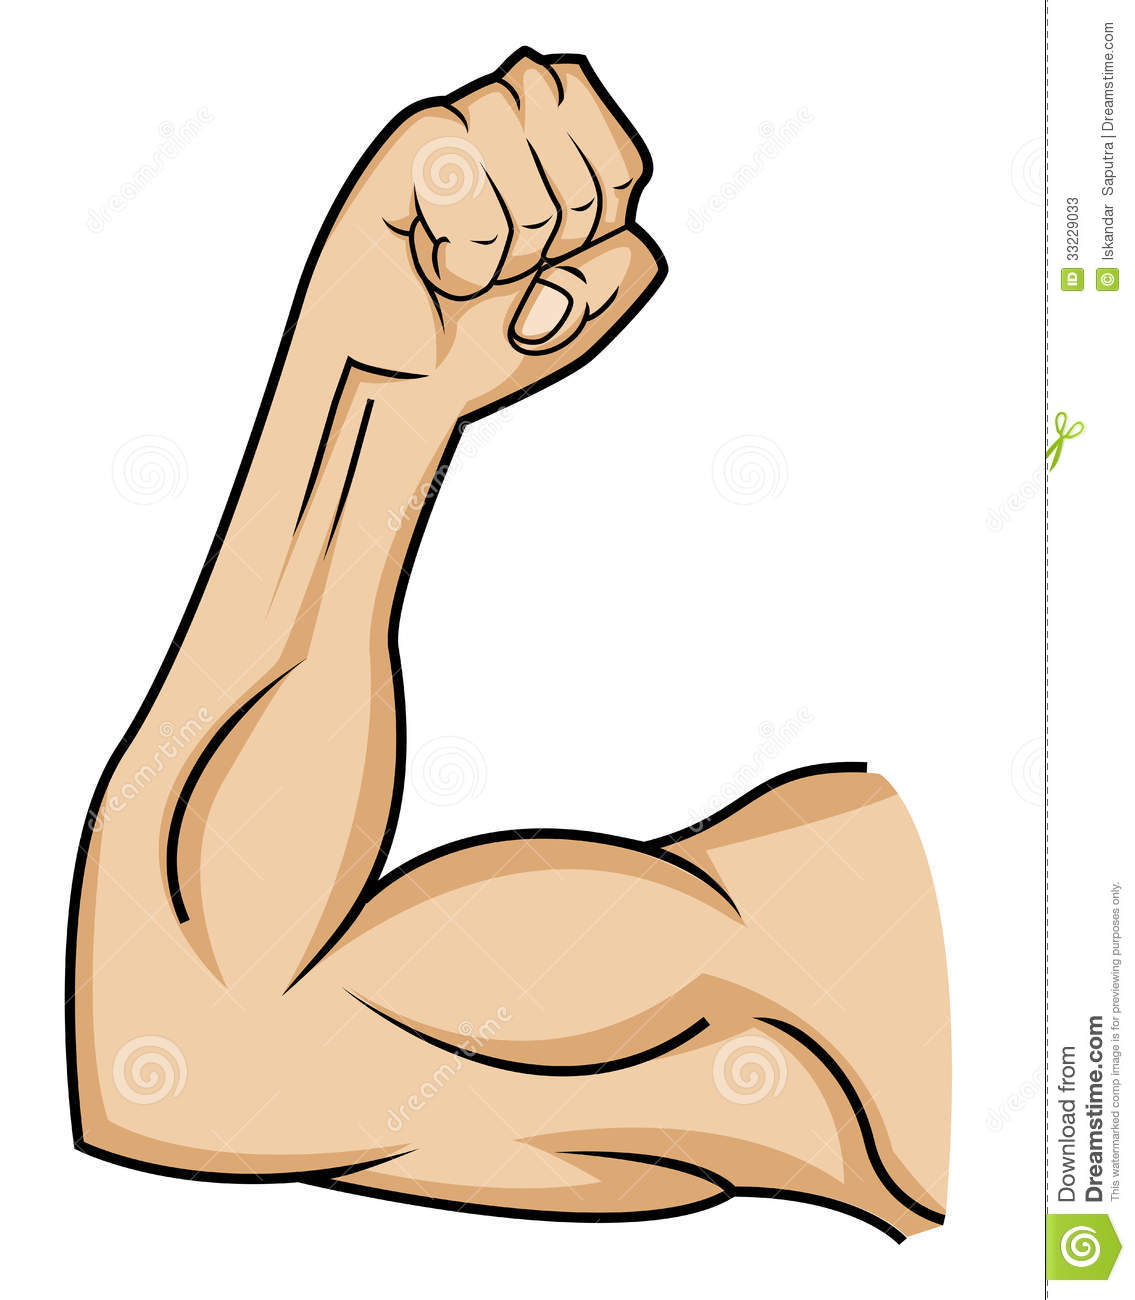 Arm clipart animated. Muscle cilpart surprising design